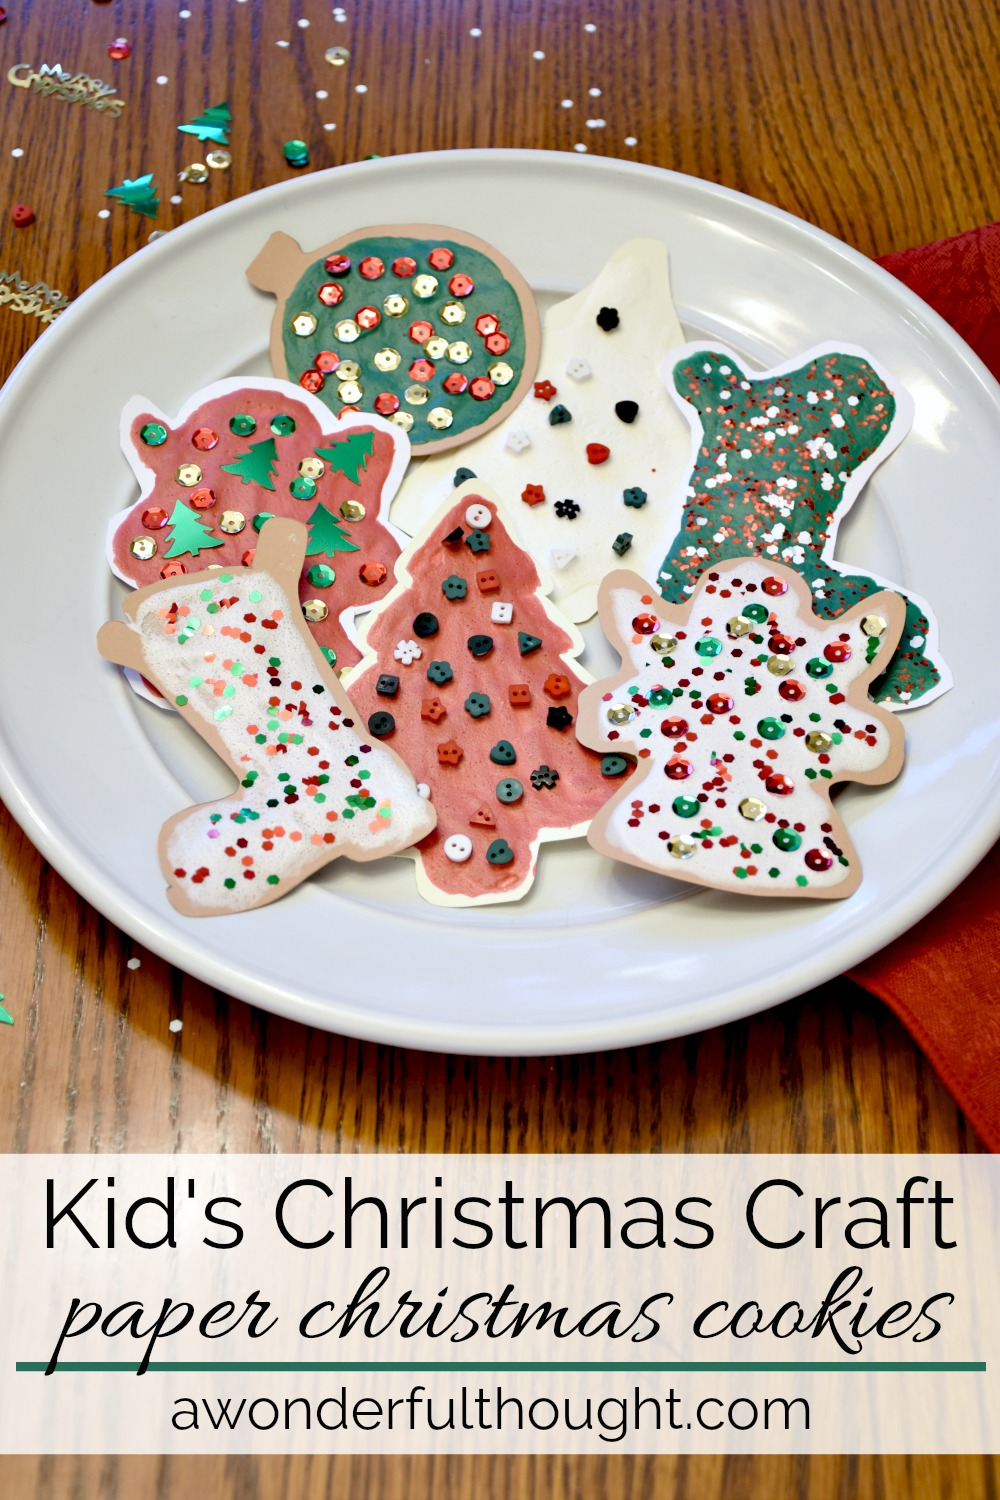 Paper Christmas Cookies - A Wonderful Thought